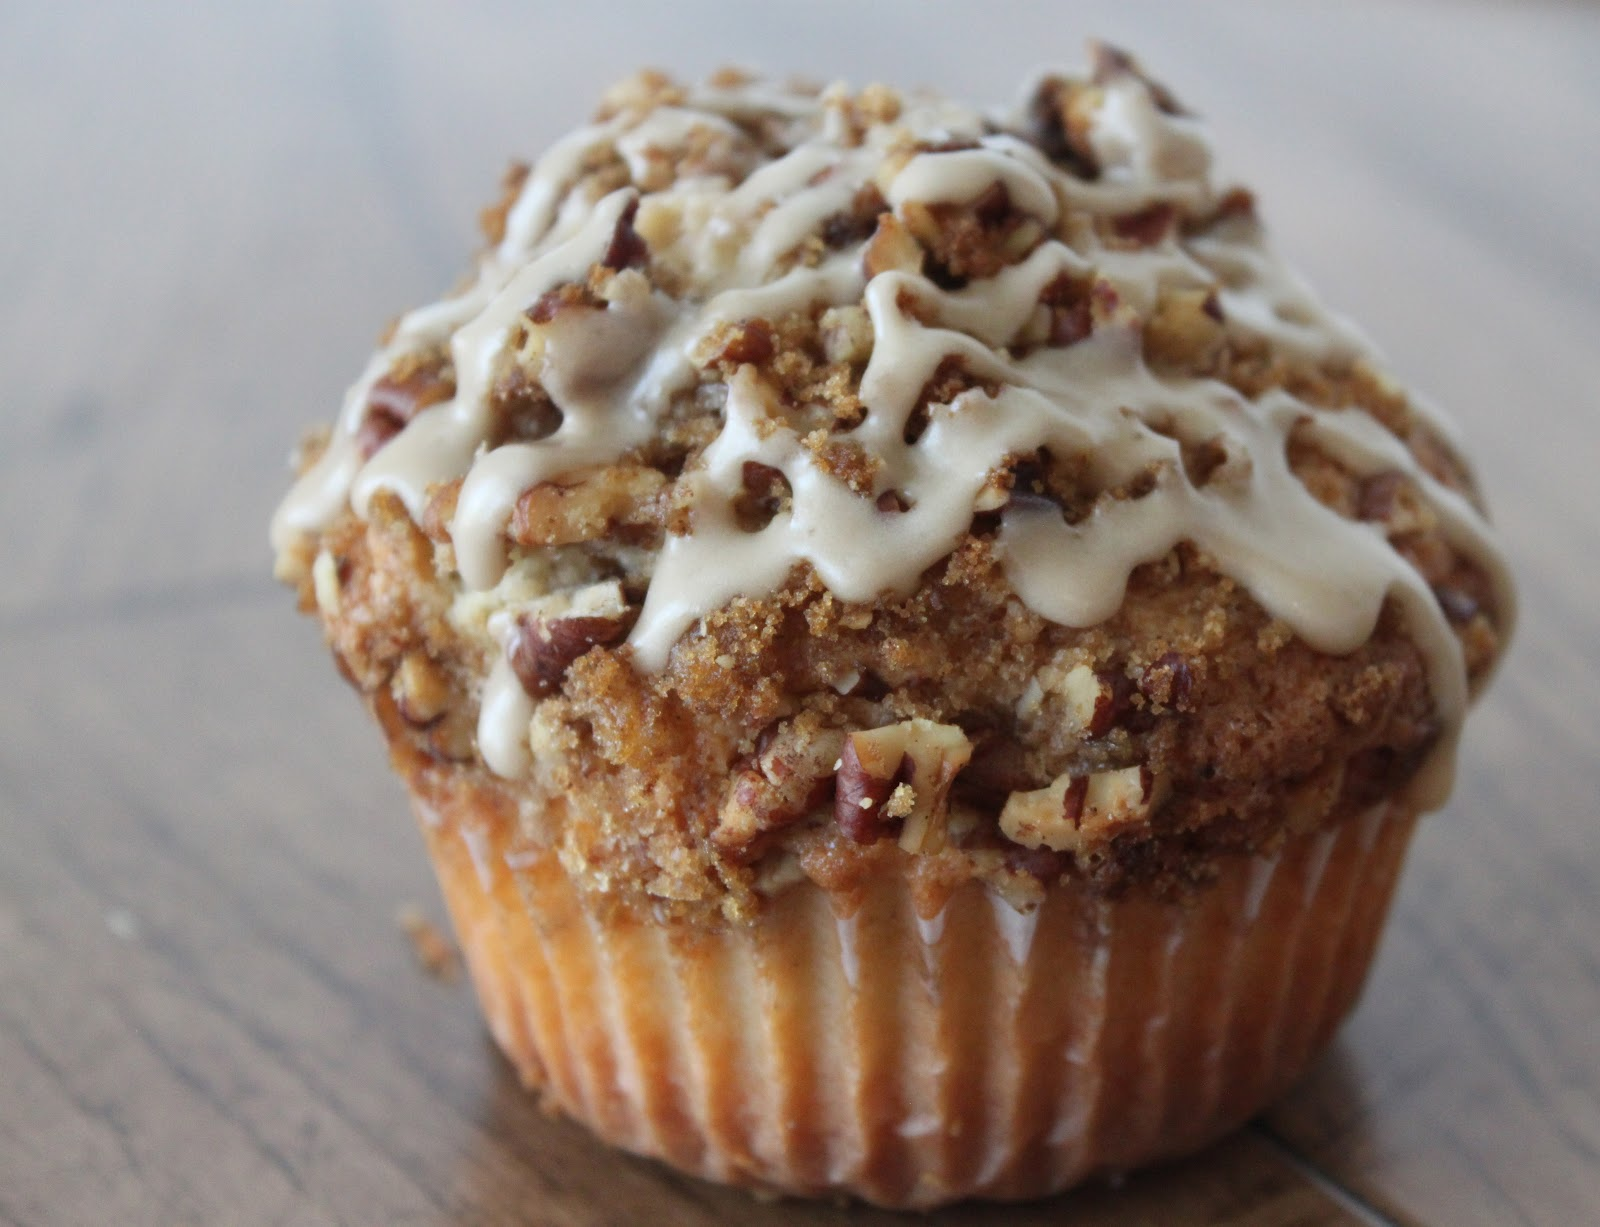 Bountiful Kitchen: Coffee Cake Muffins with Salted Maple Glaze